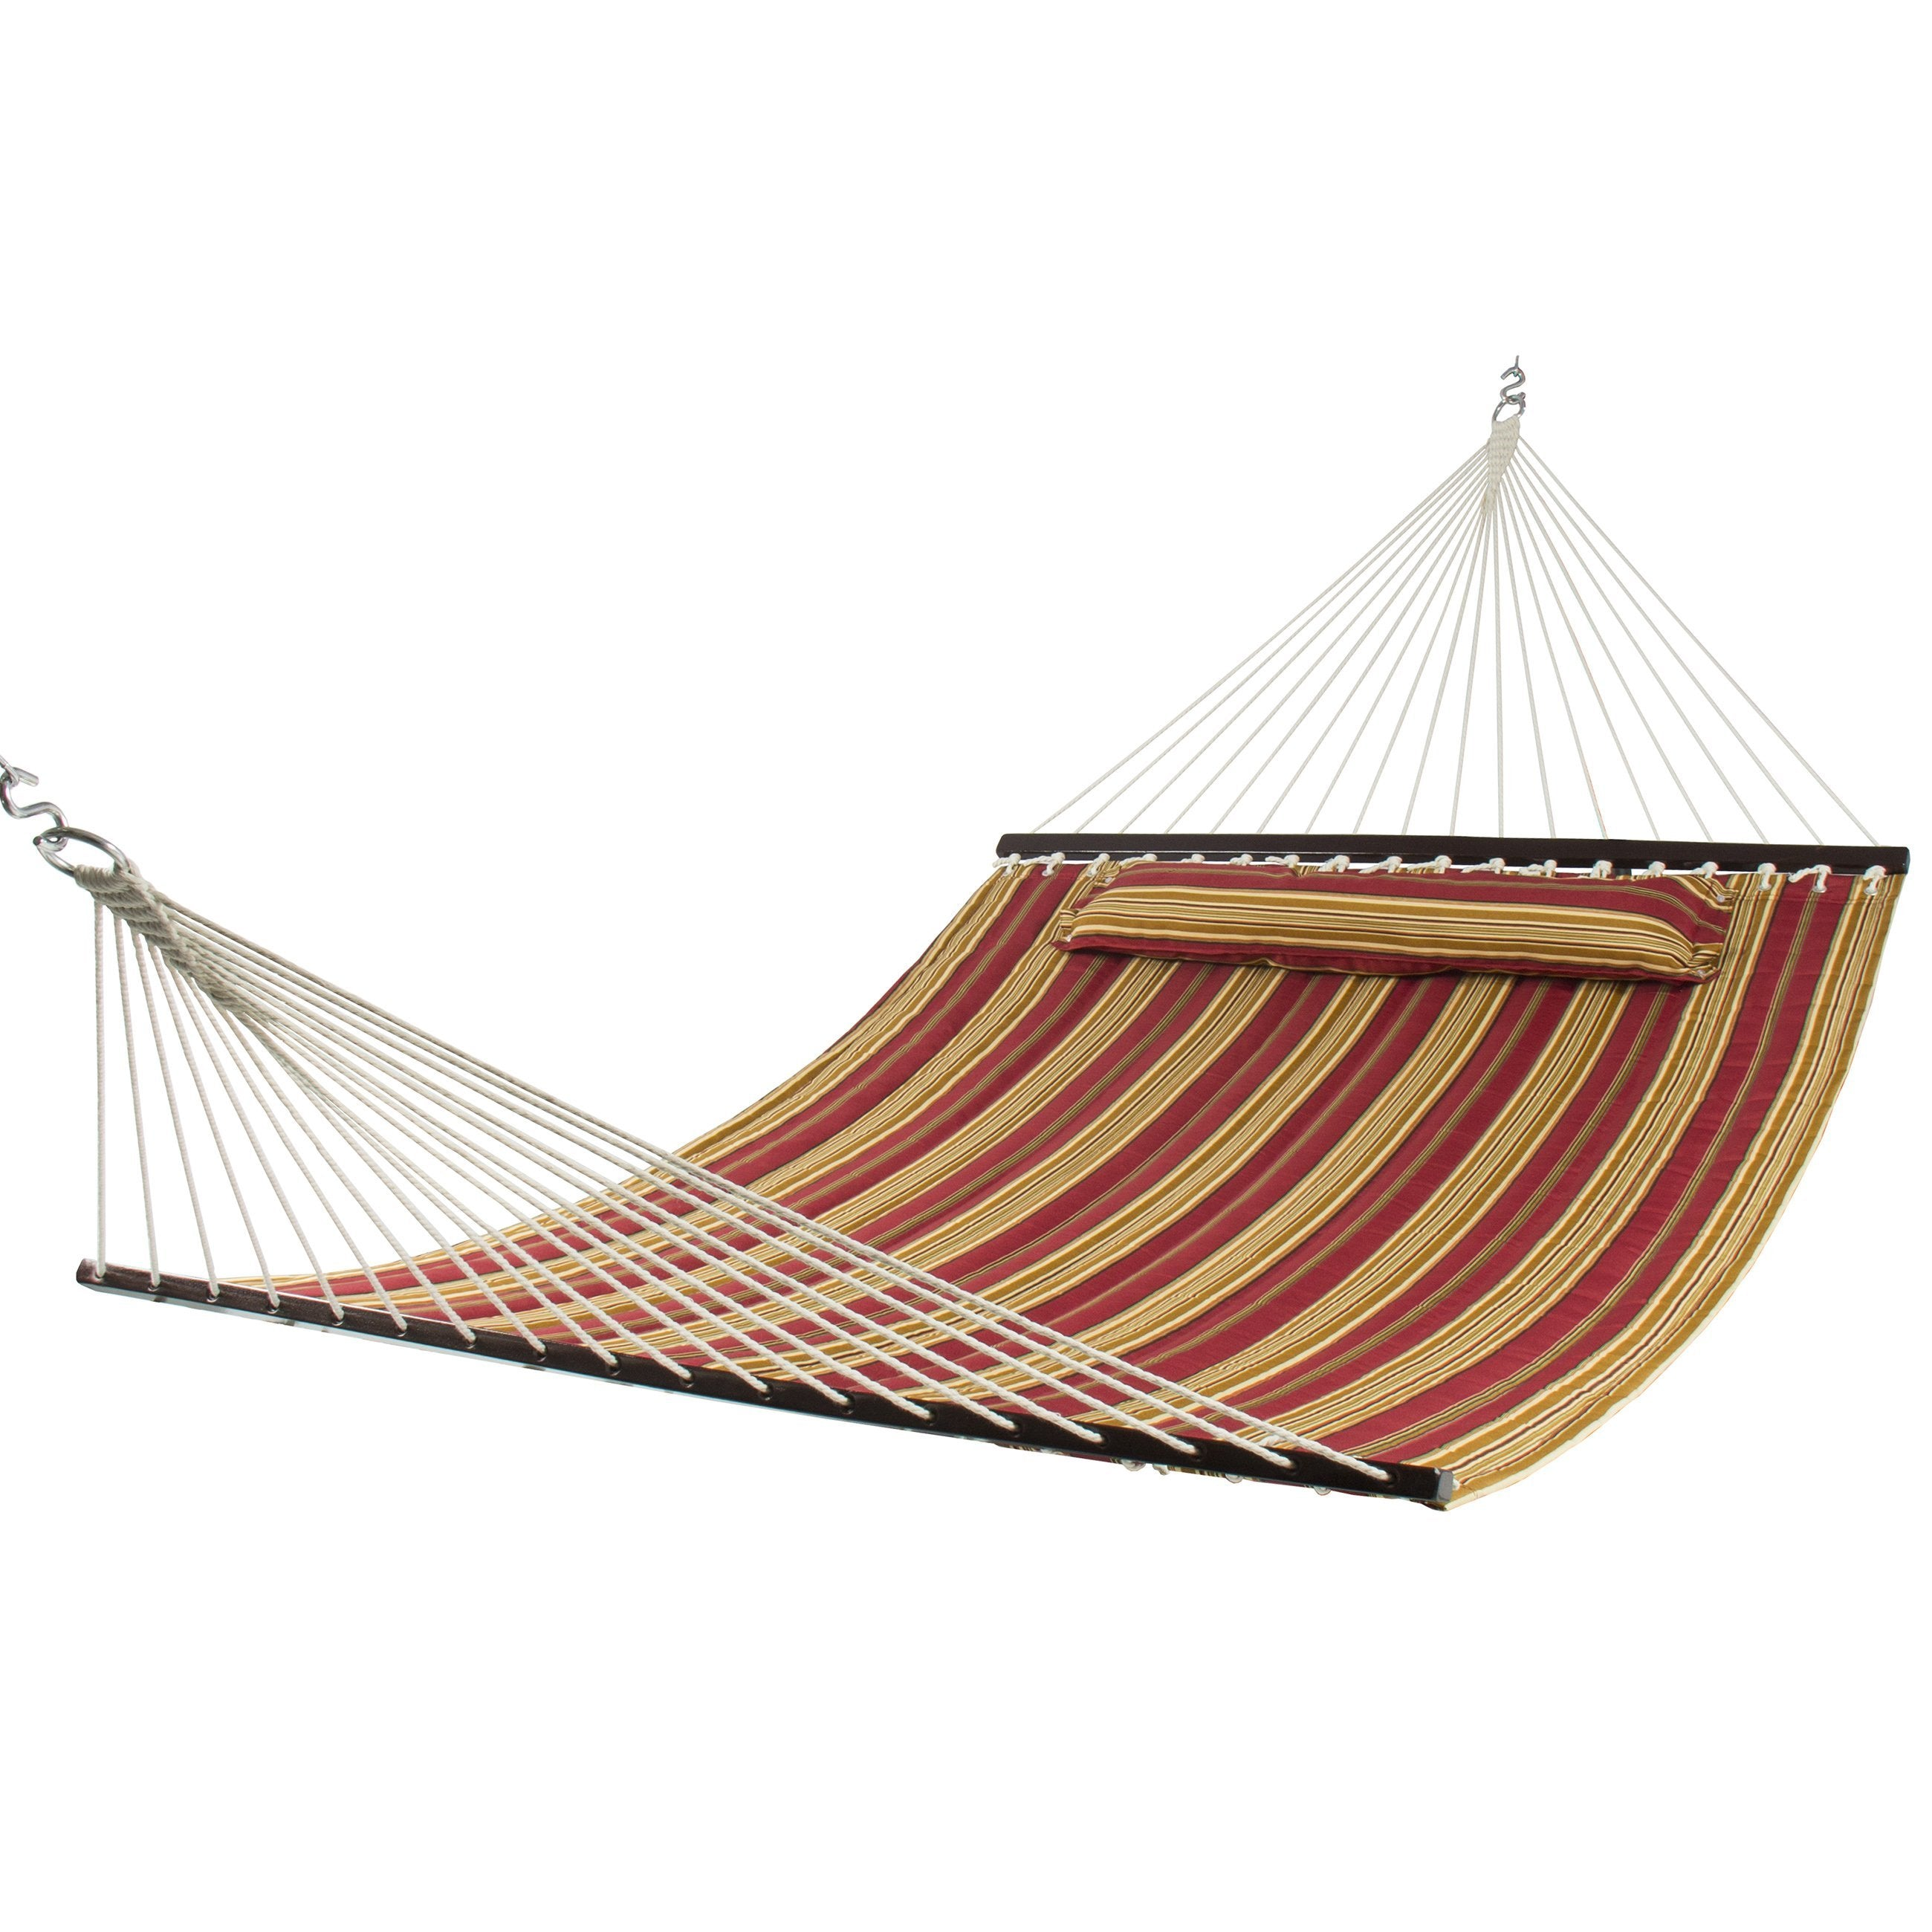 2-Person Quilted Double Hammock w/ Detachable Pillow, Carrying Case